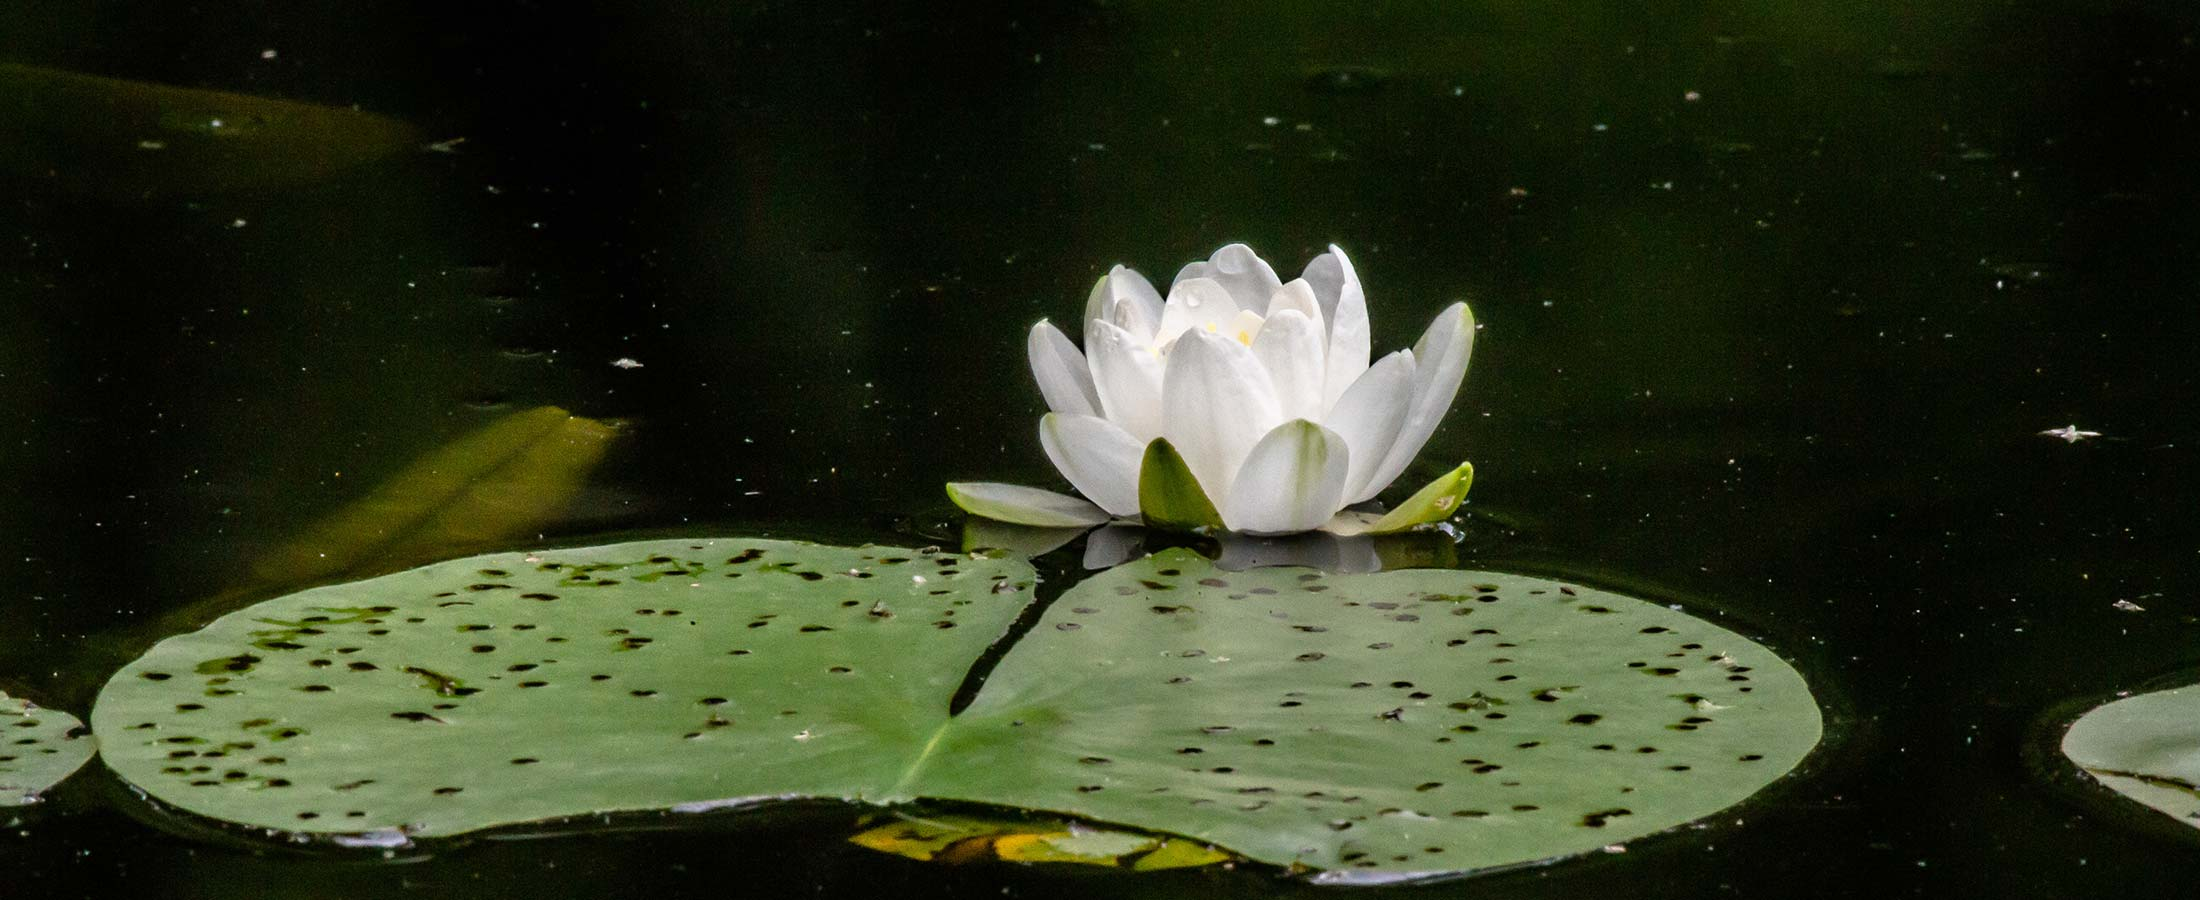 Waterlily - Photo Jace Delgado